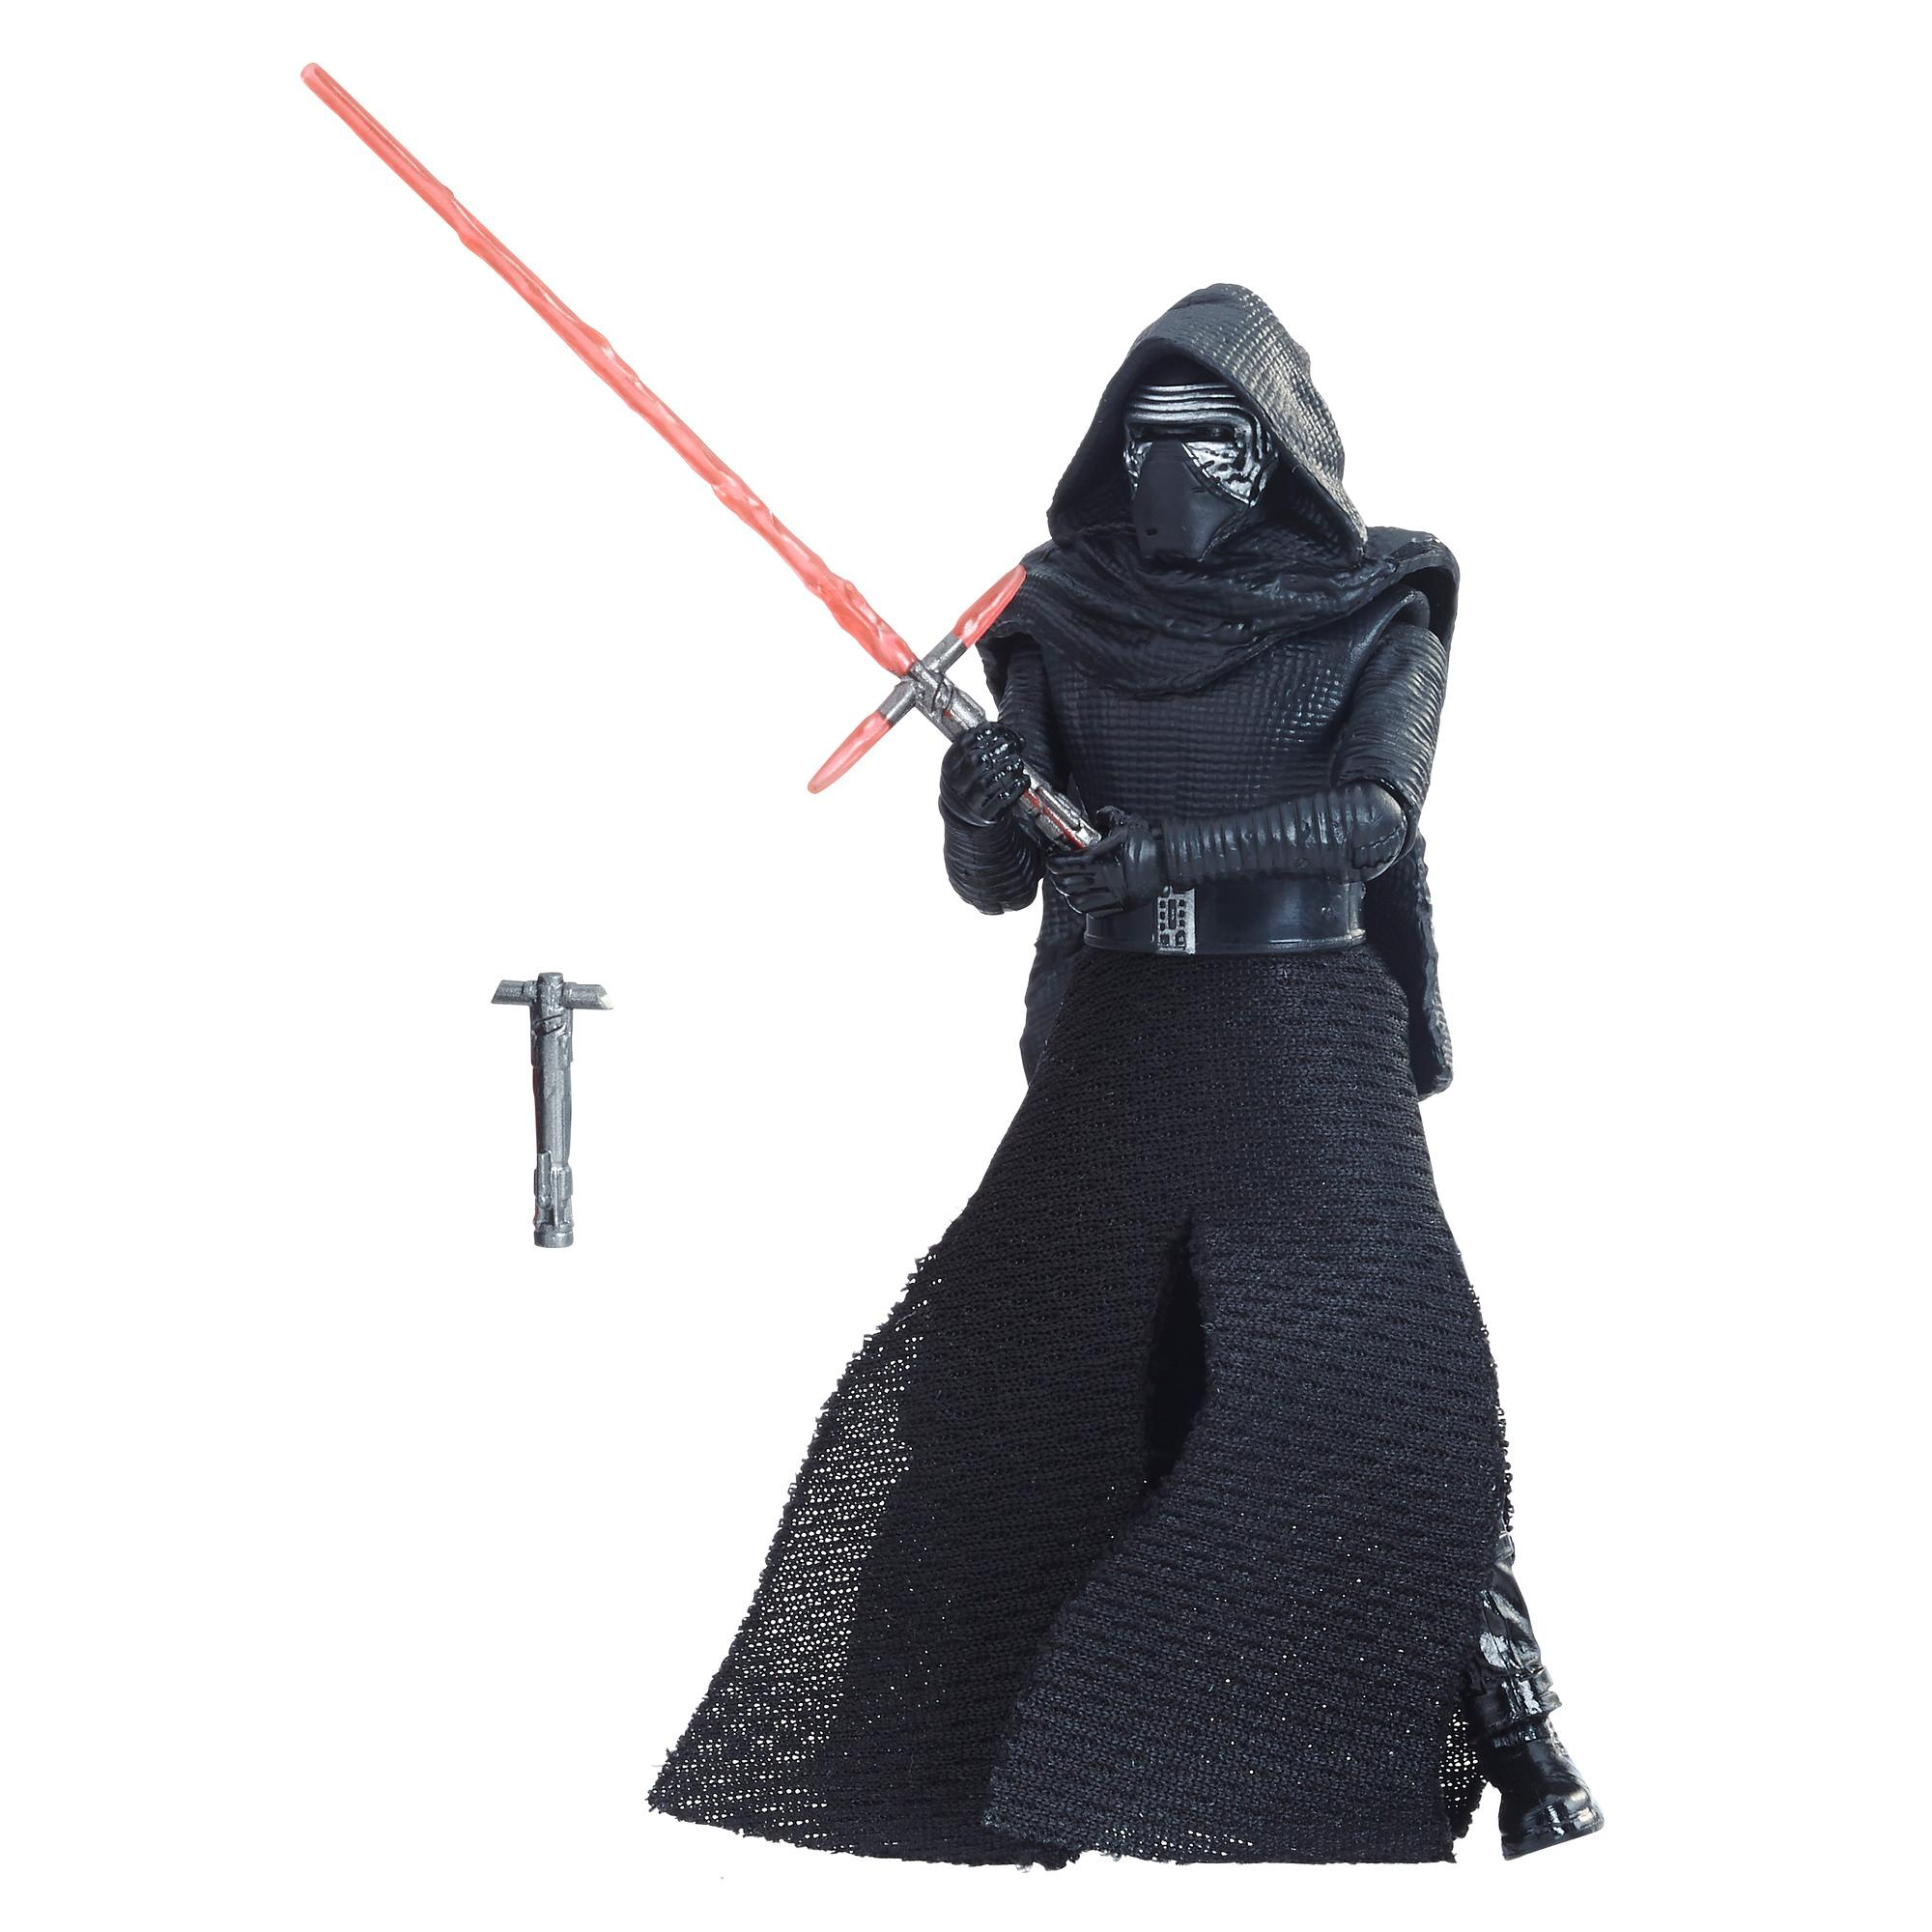 Star Wars - Collection Vintage - Figurine Kylo Ren de 9,5 cm